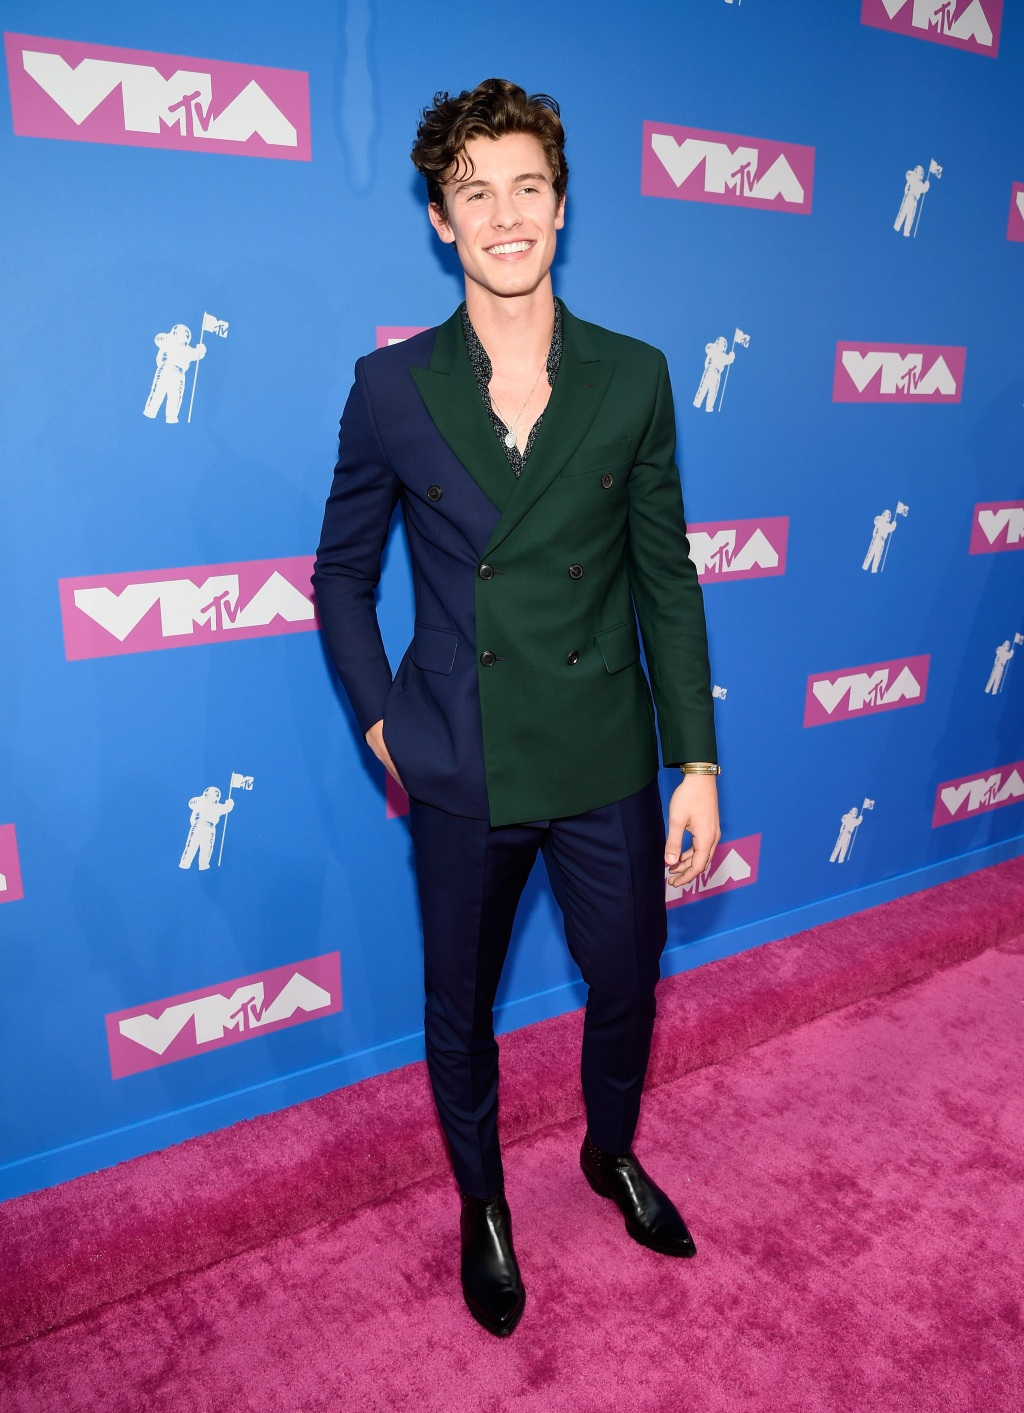 Shawn Mendes attends the 2018 MTV Video Music Awards at Radio City Music Hall on August 20, 2018 in New York City. (Photo by Kevin Mazur/WireImage)